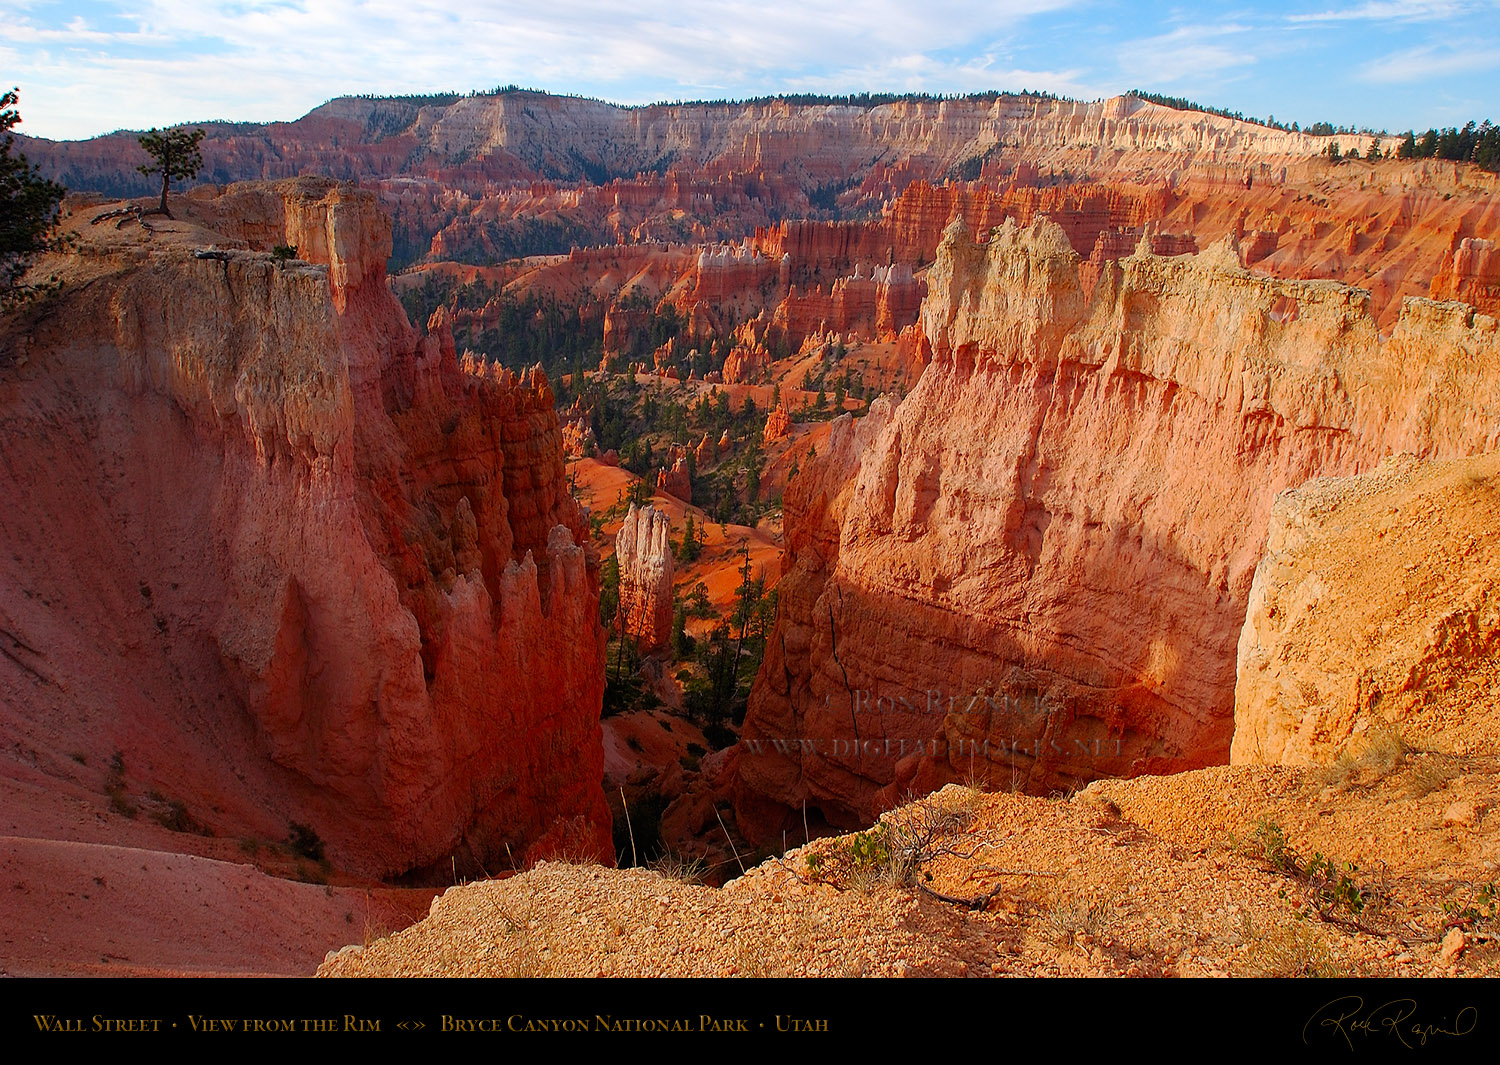 Inspiration Point and Rim Views Bryce Canyon